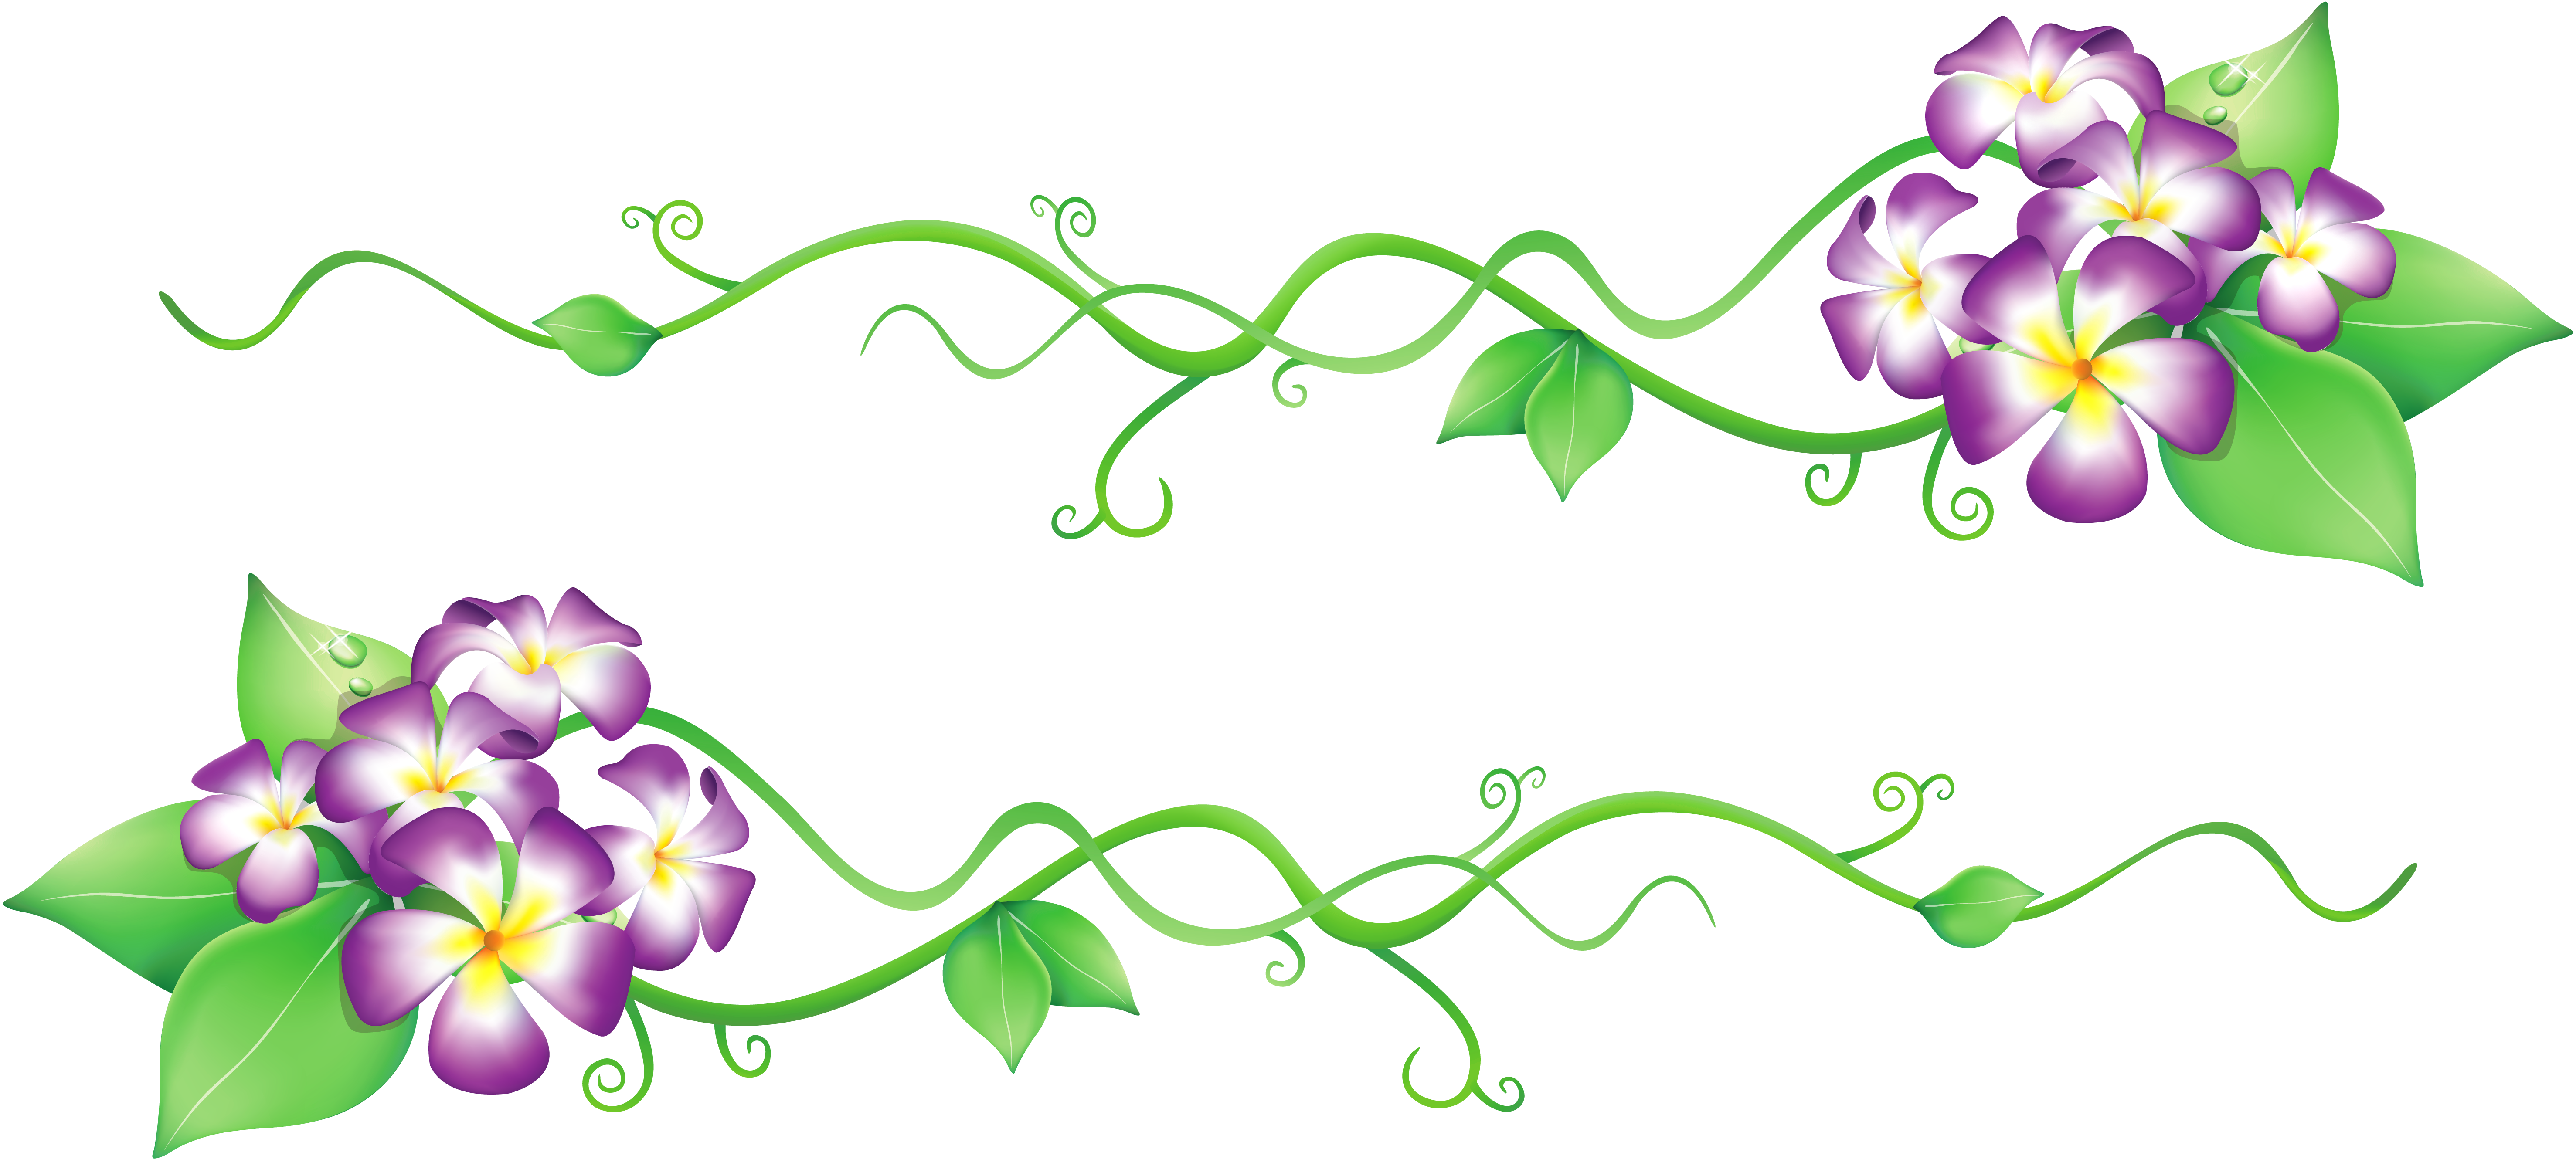 Flower wallpaper clipart banner free Flowers Spring Decor PNG Clipart banner free